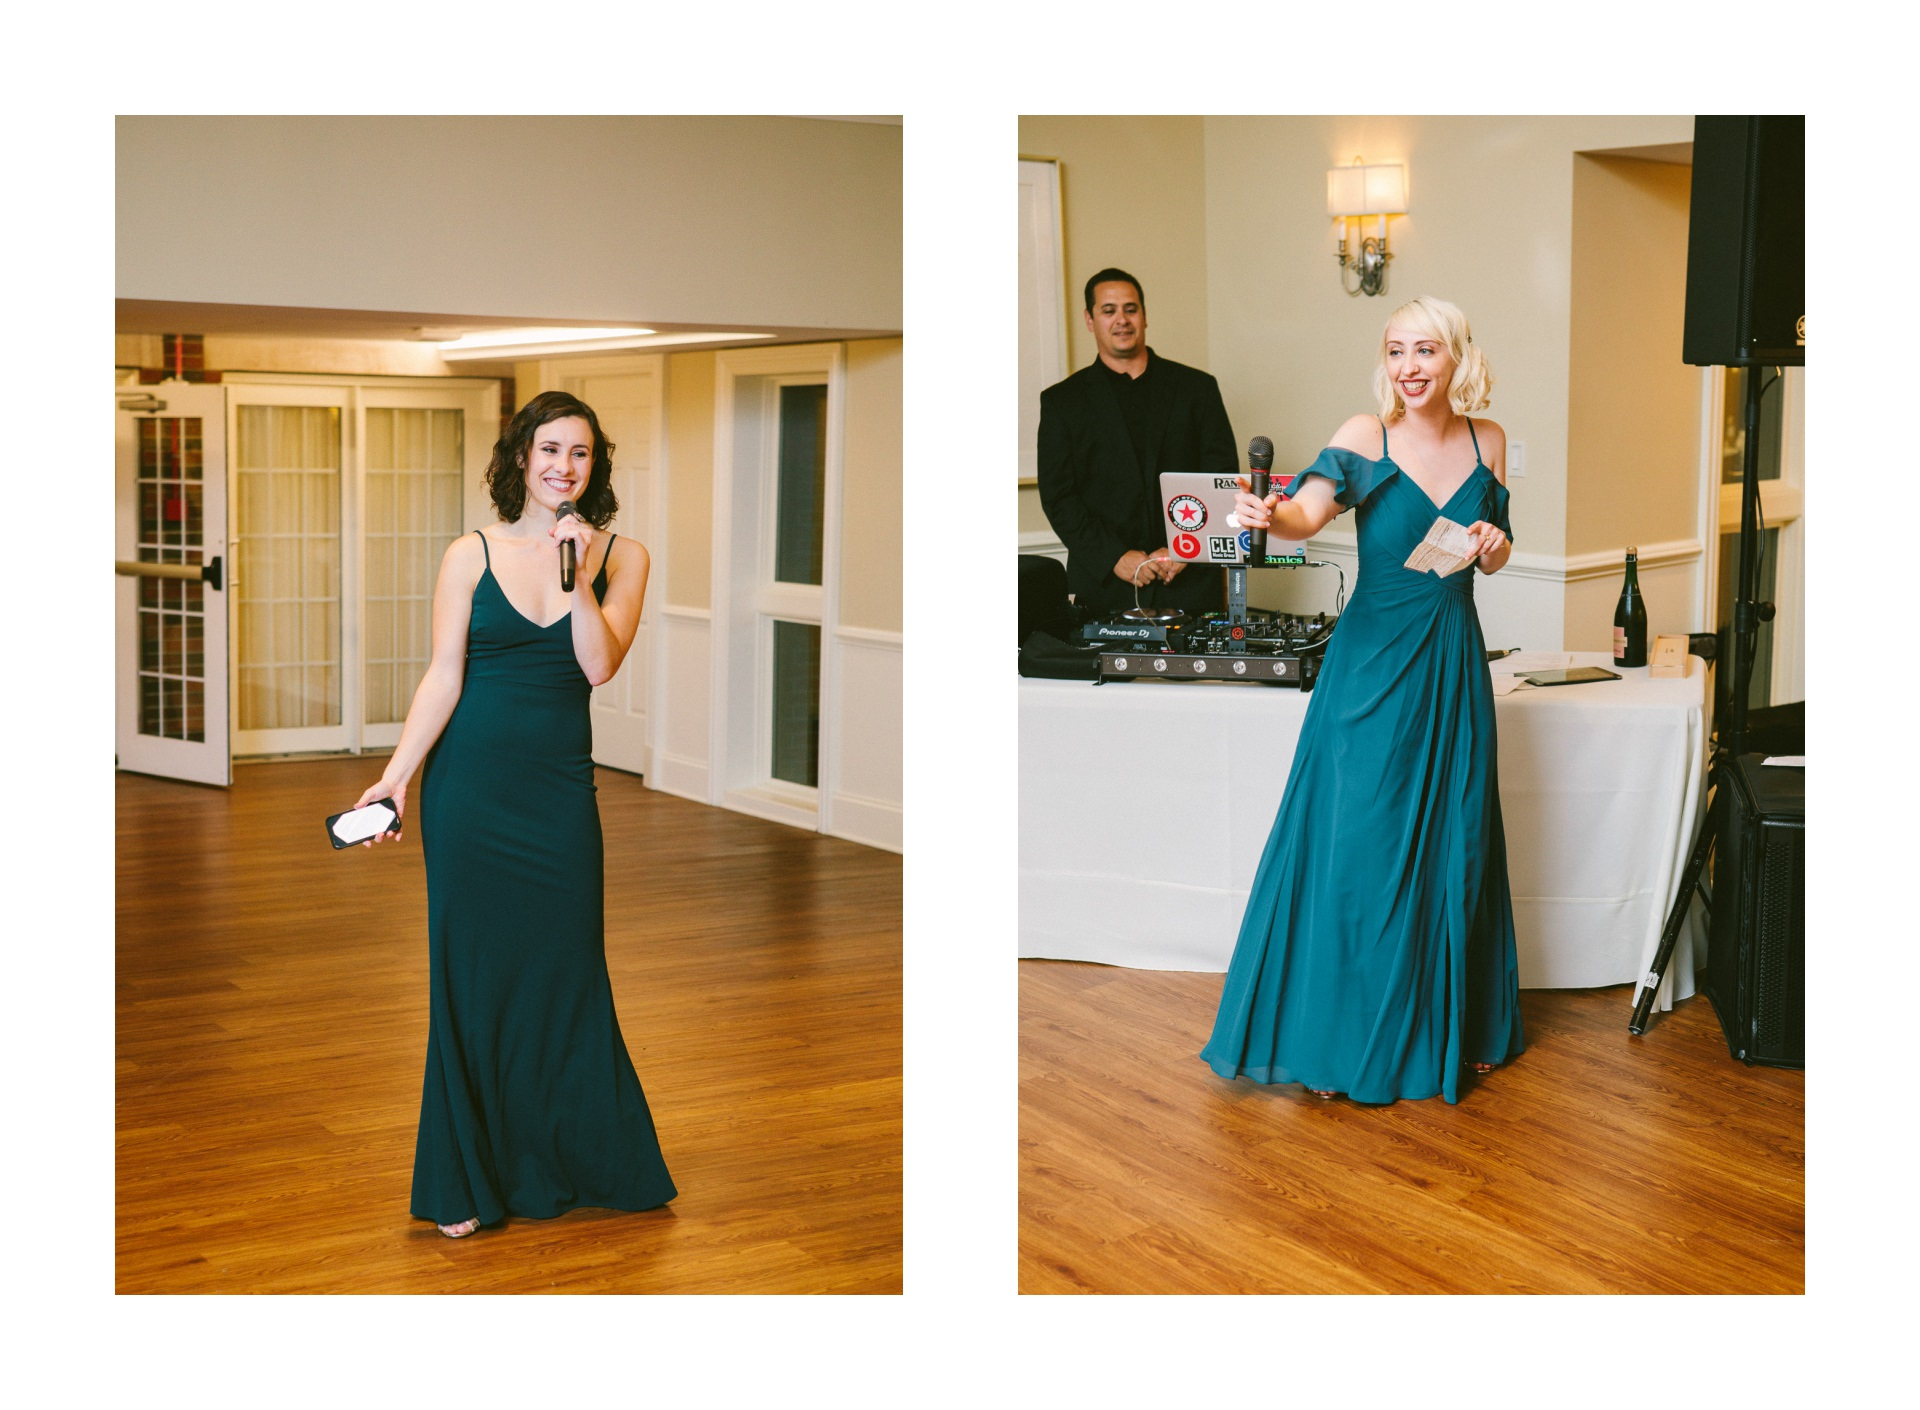 Wedding at the Glidden House in Cleveland 2 30.jpg